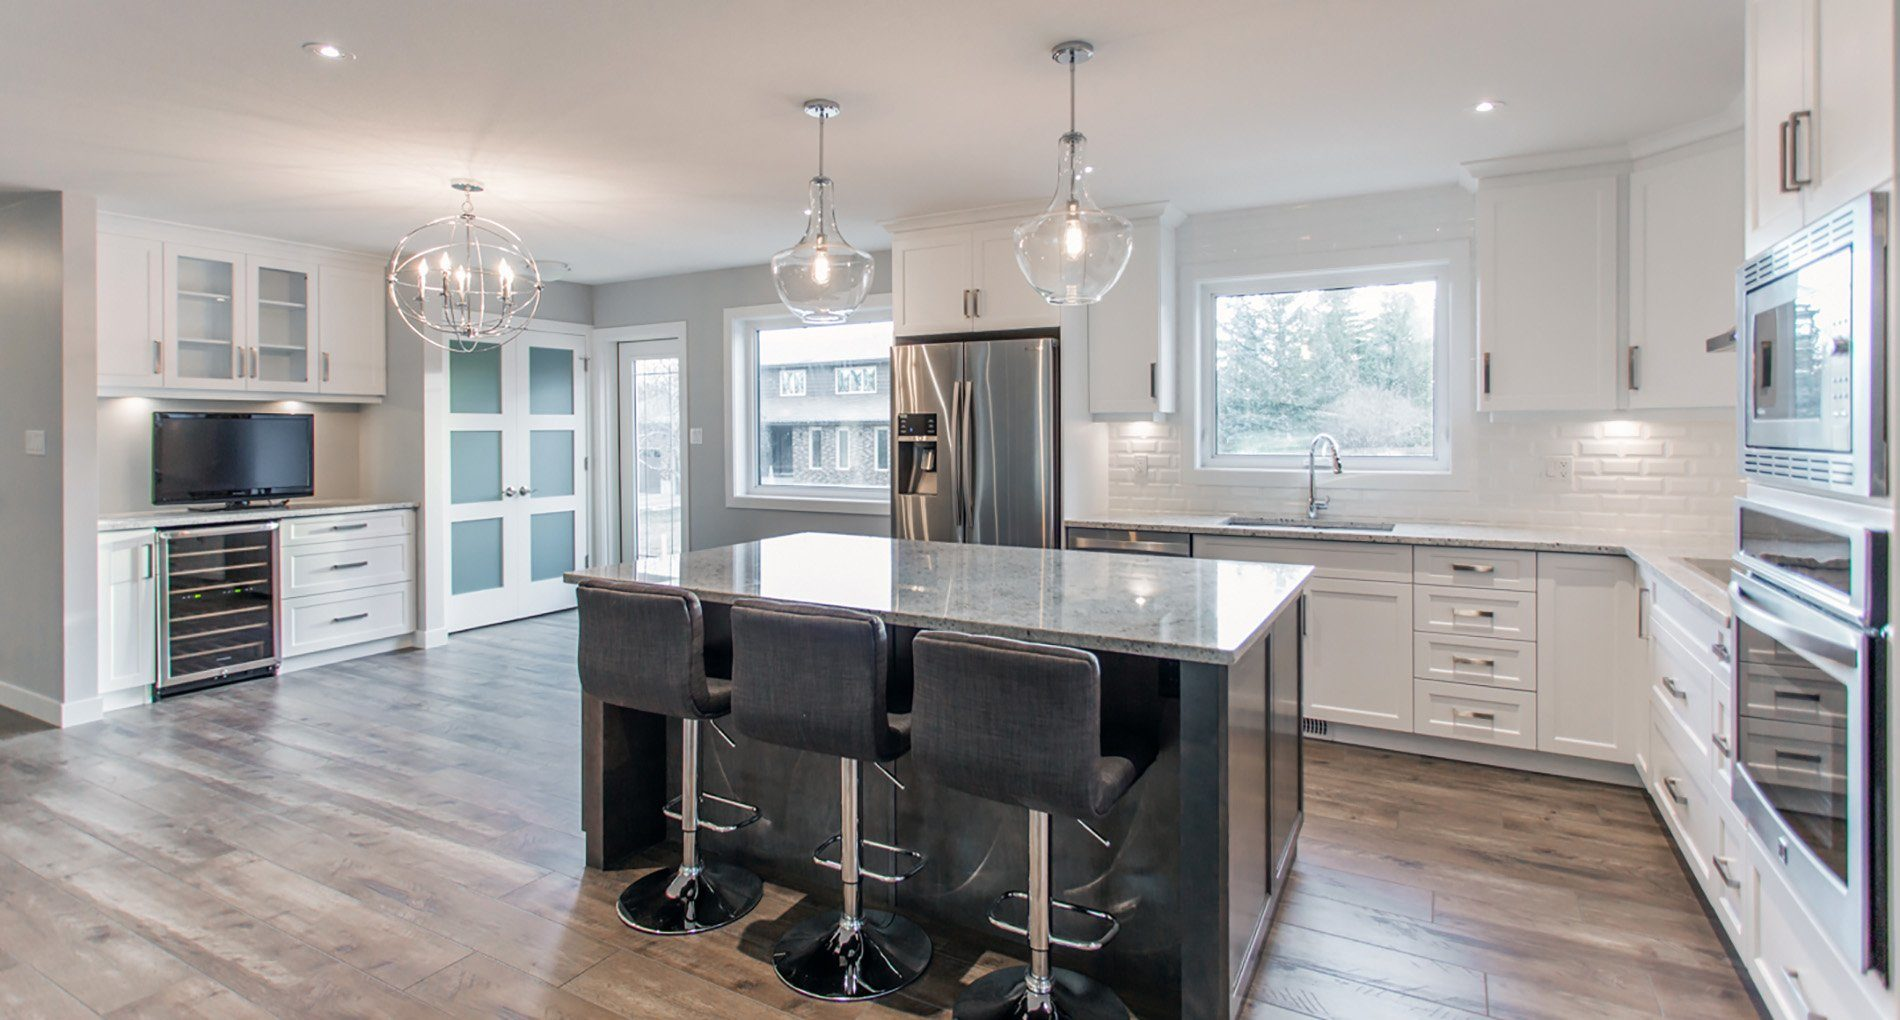 Kitchen Renovation Regina Windsorplace Slider